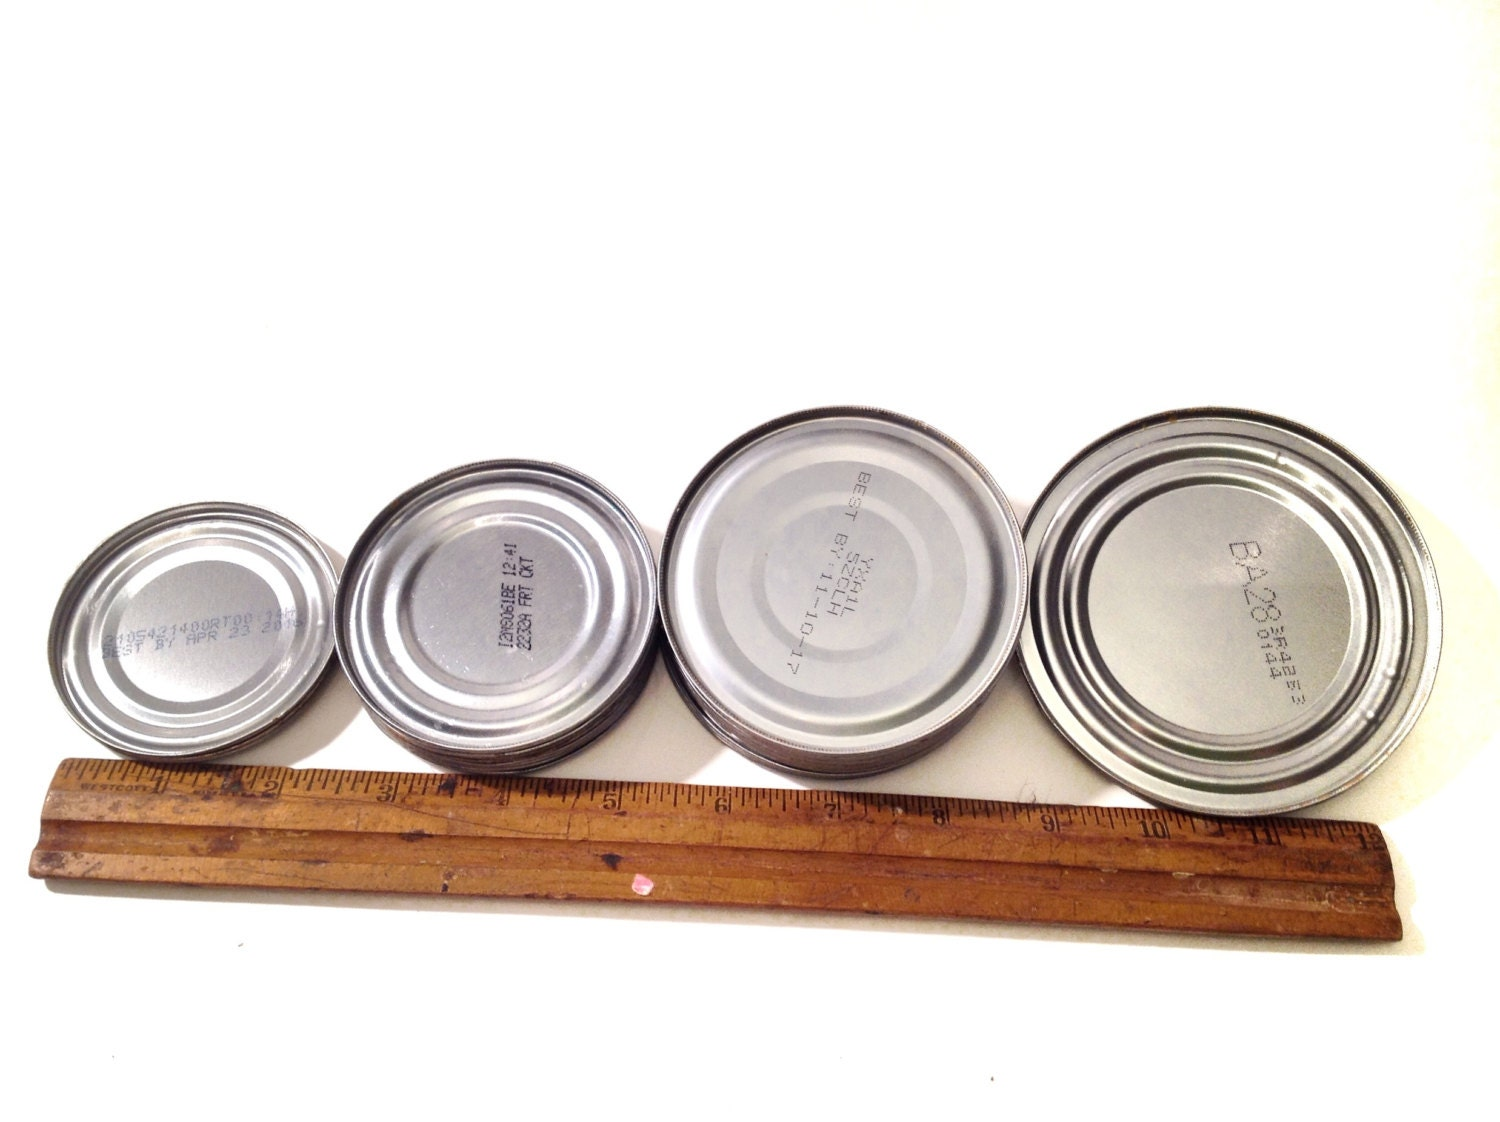 Metal craft tin can lids supply industrial salvage for Metal art craft supplies